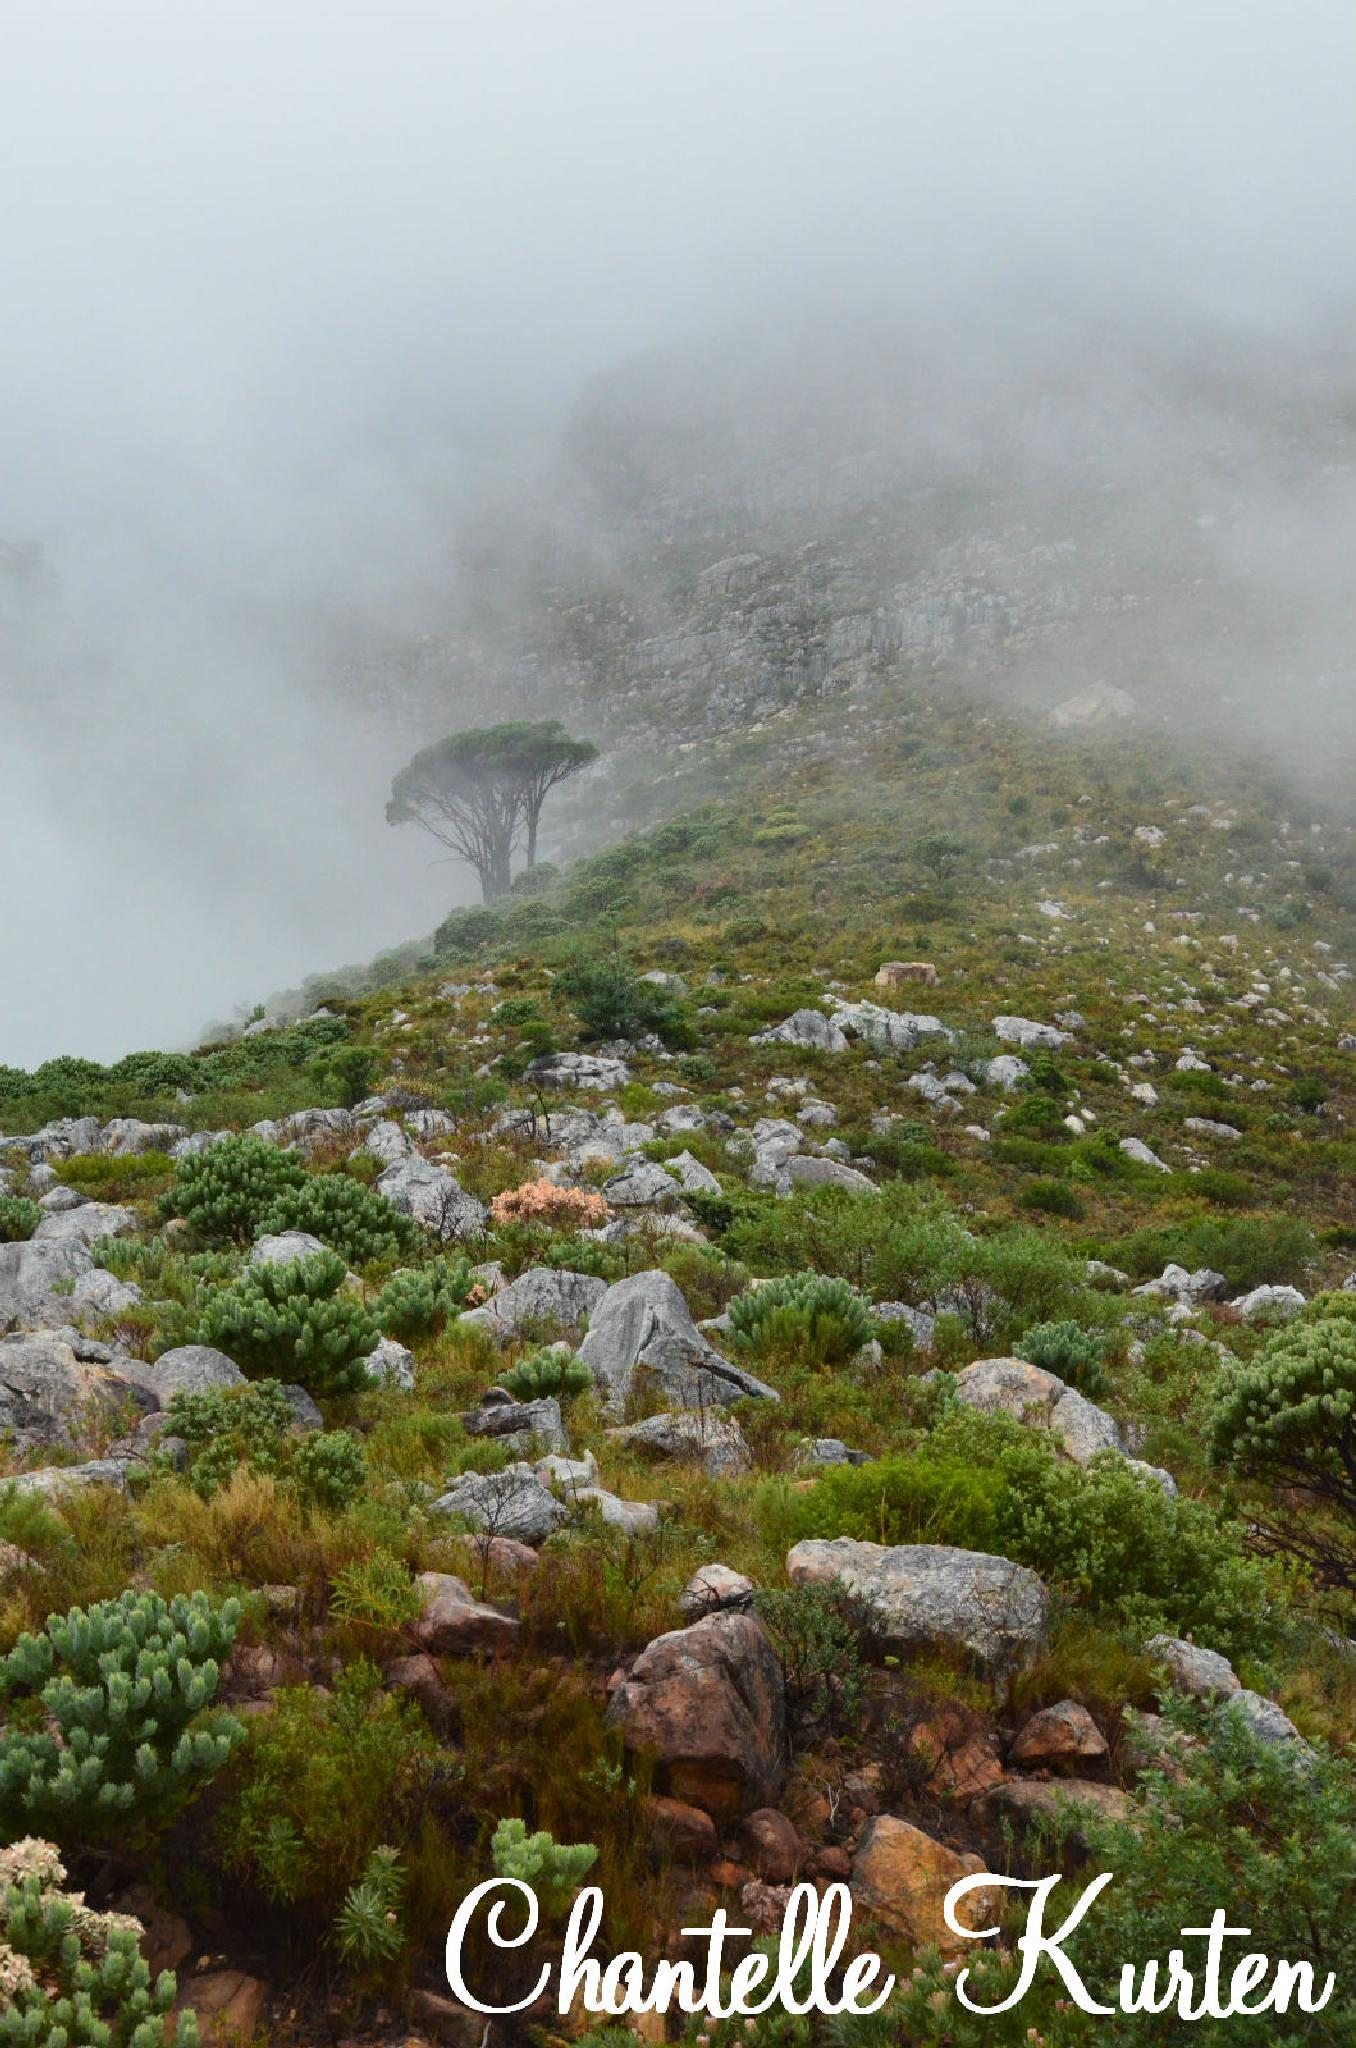 From the bottom of Table Mountain. by Chantelle Maritz